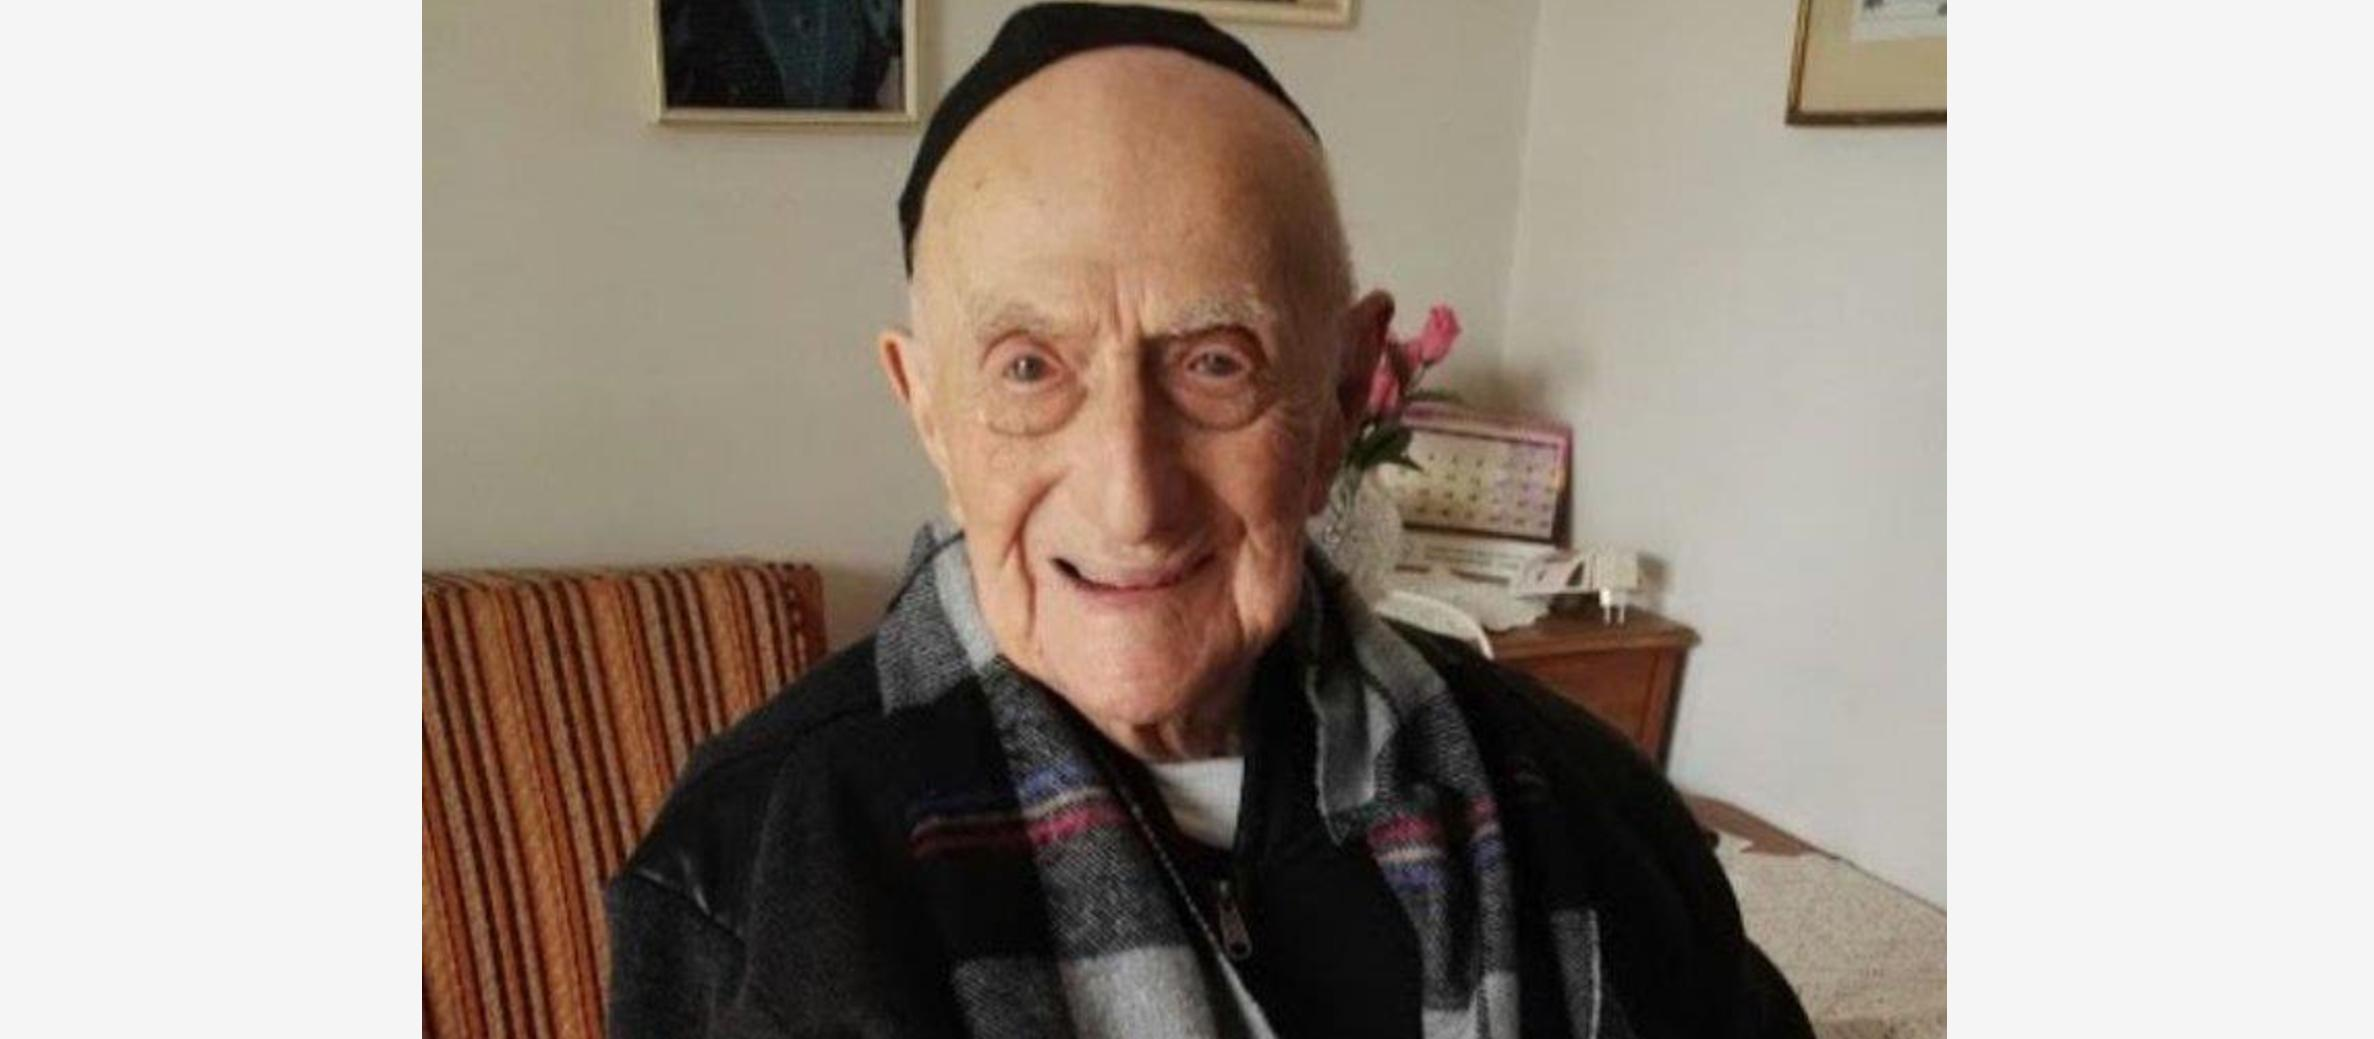 World's oldest man, a Holocaust survivor, to celebrate the barmitzvah he missed